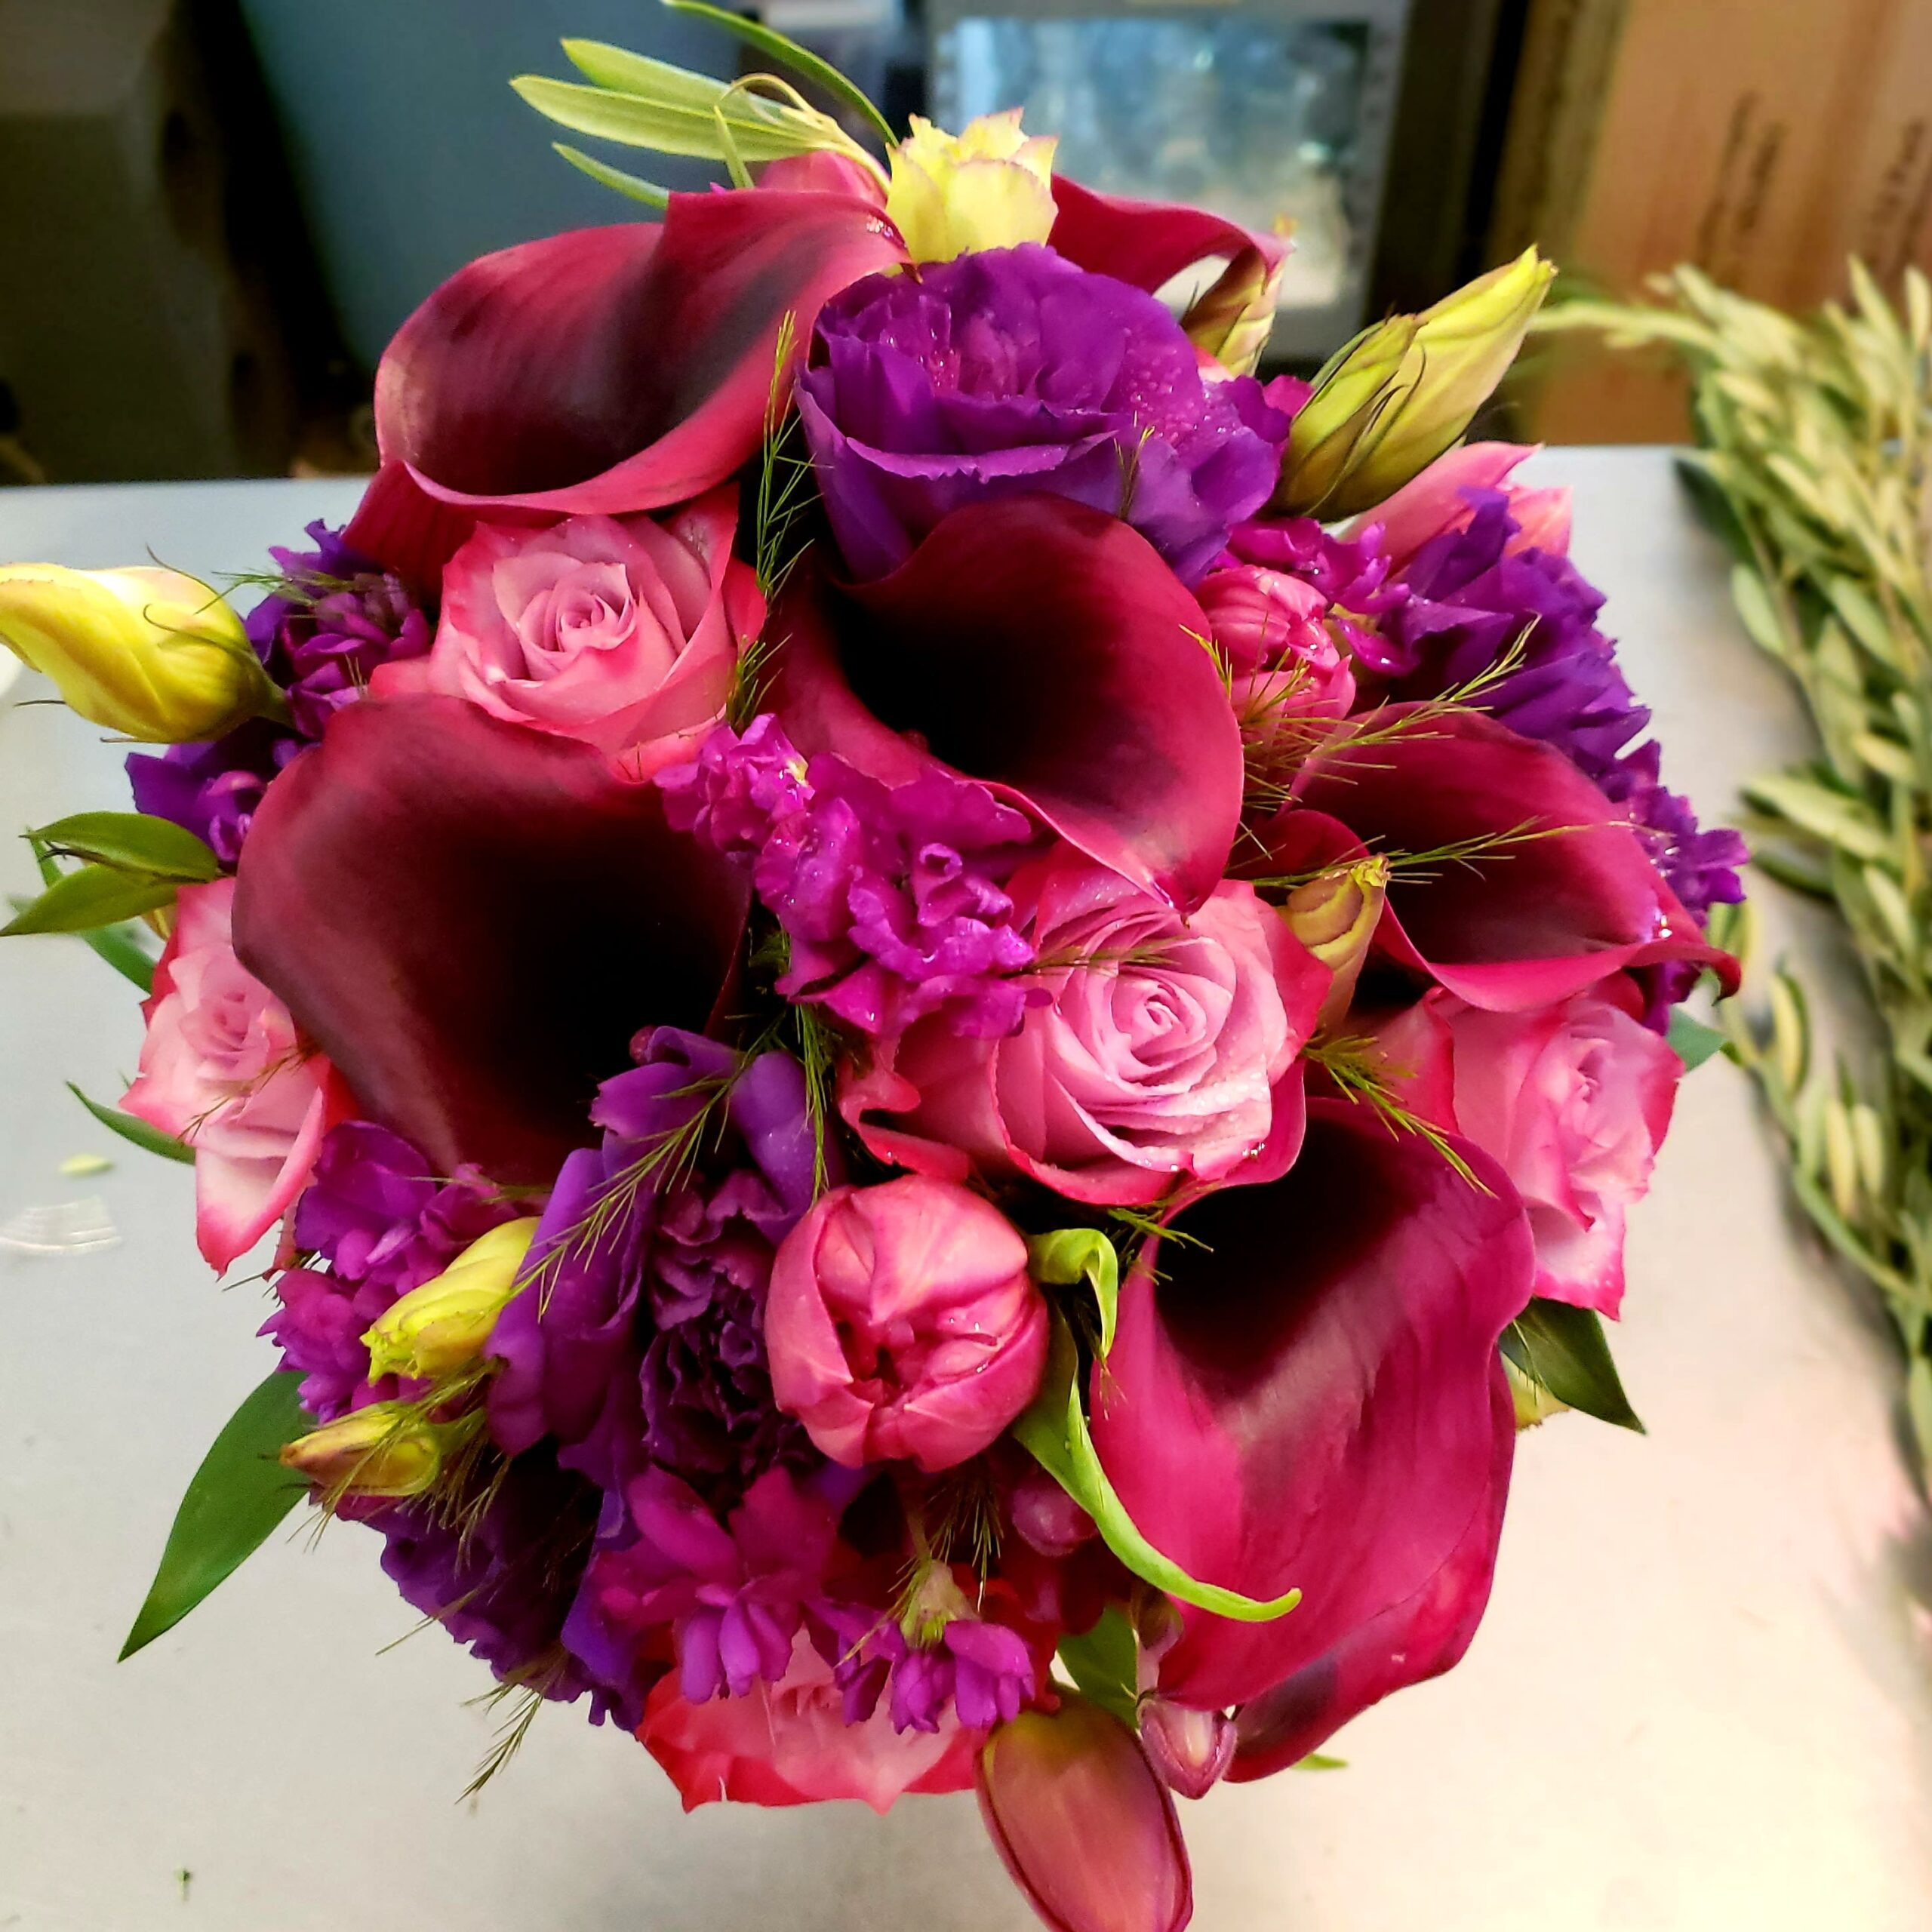 choose purple tulip wedding bouquets for your wedding 7 scaled - Choose Purple tulip wedding bouquets for Your Wedding